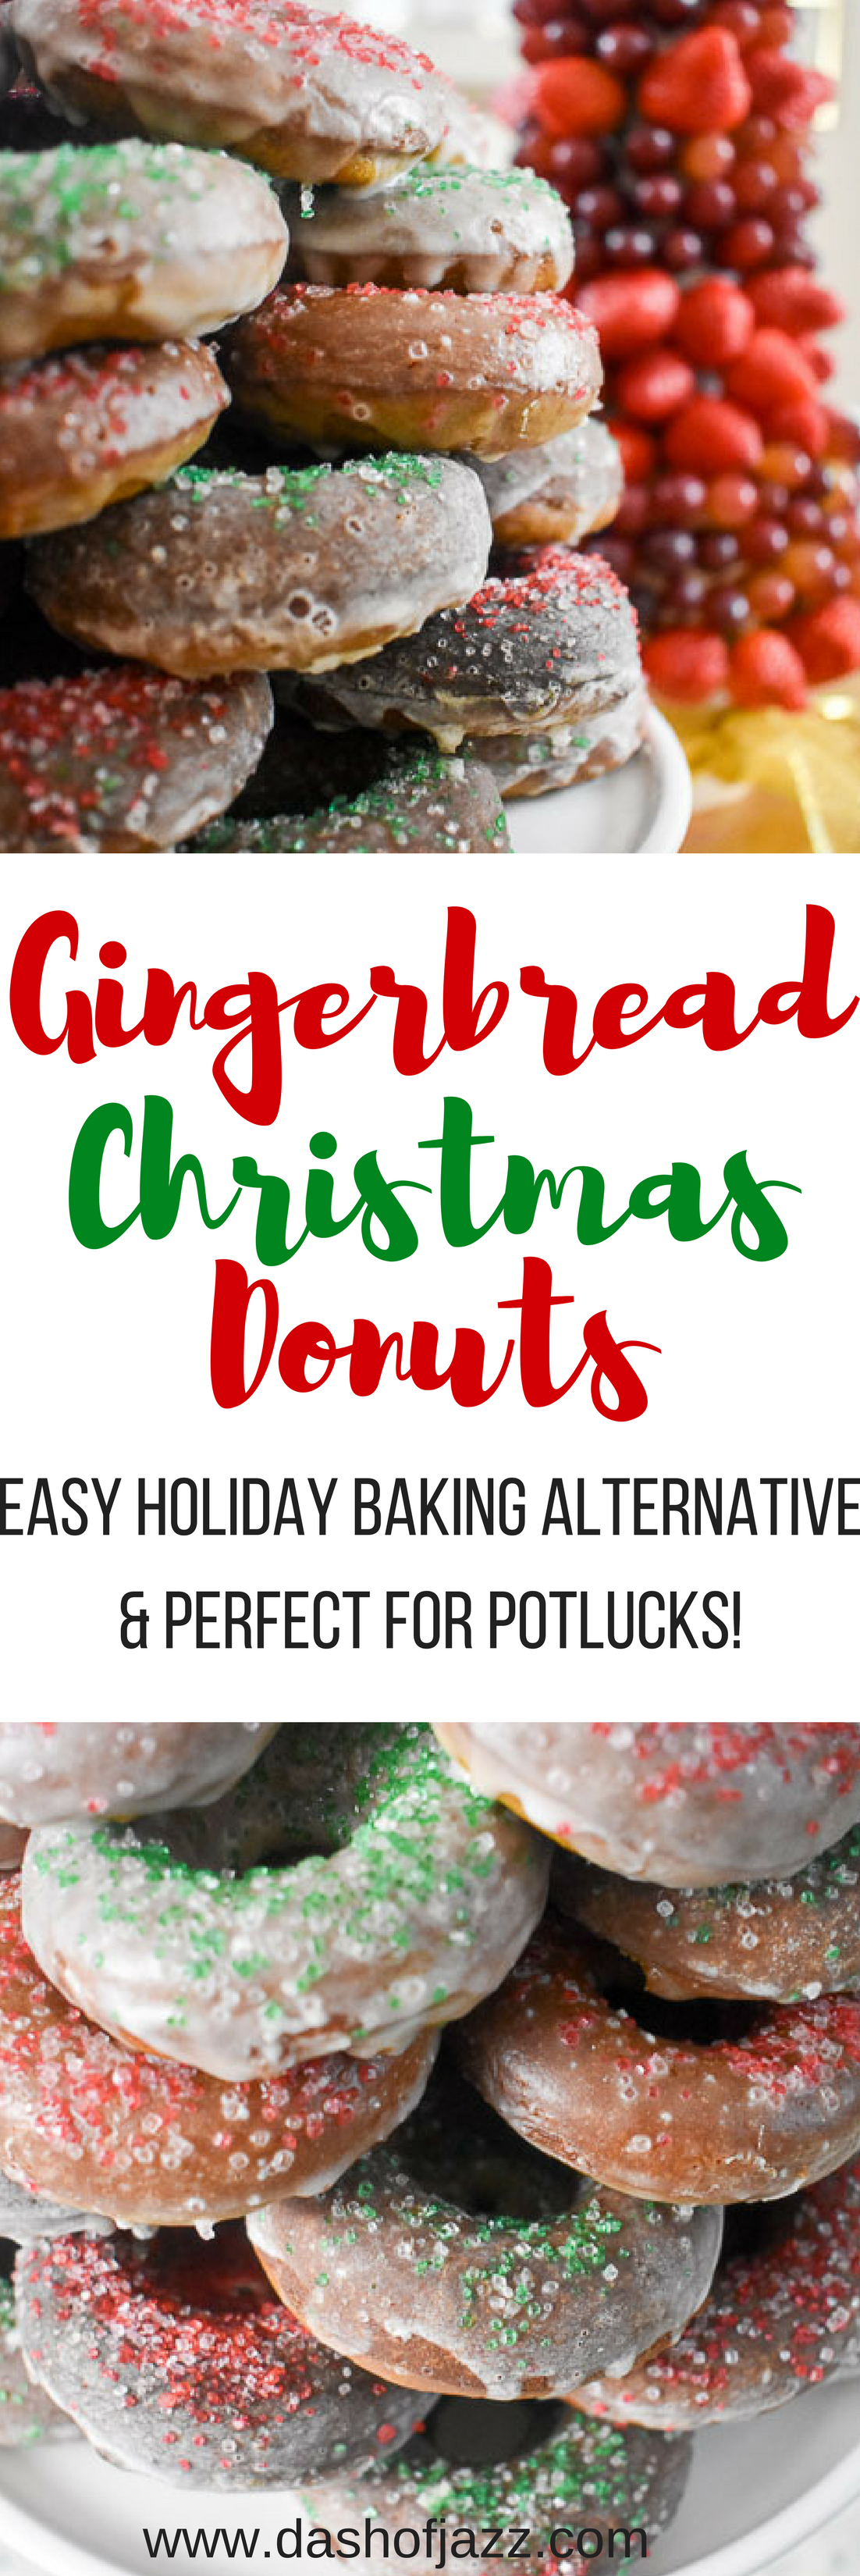 Make these gingerbread Christmas donuts for an easy and unique holiday dessert this season. Recipe by Dash of Jazz